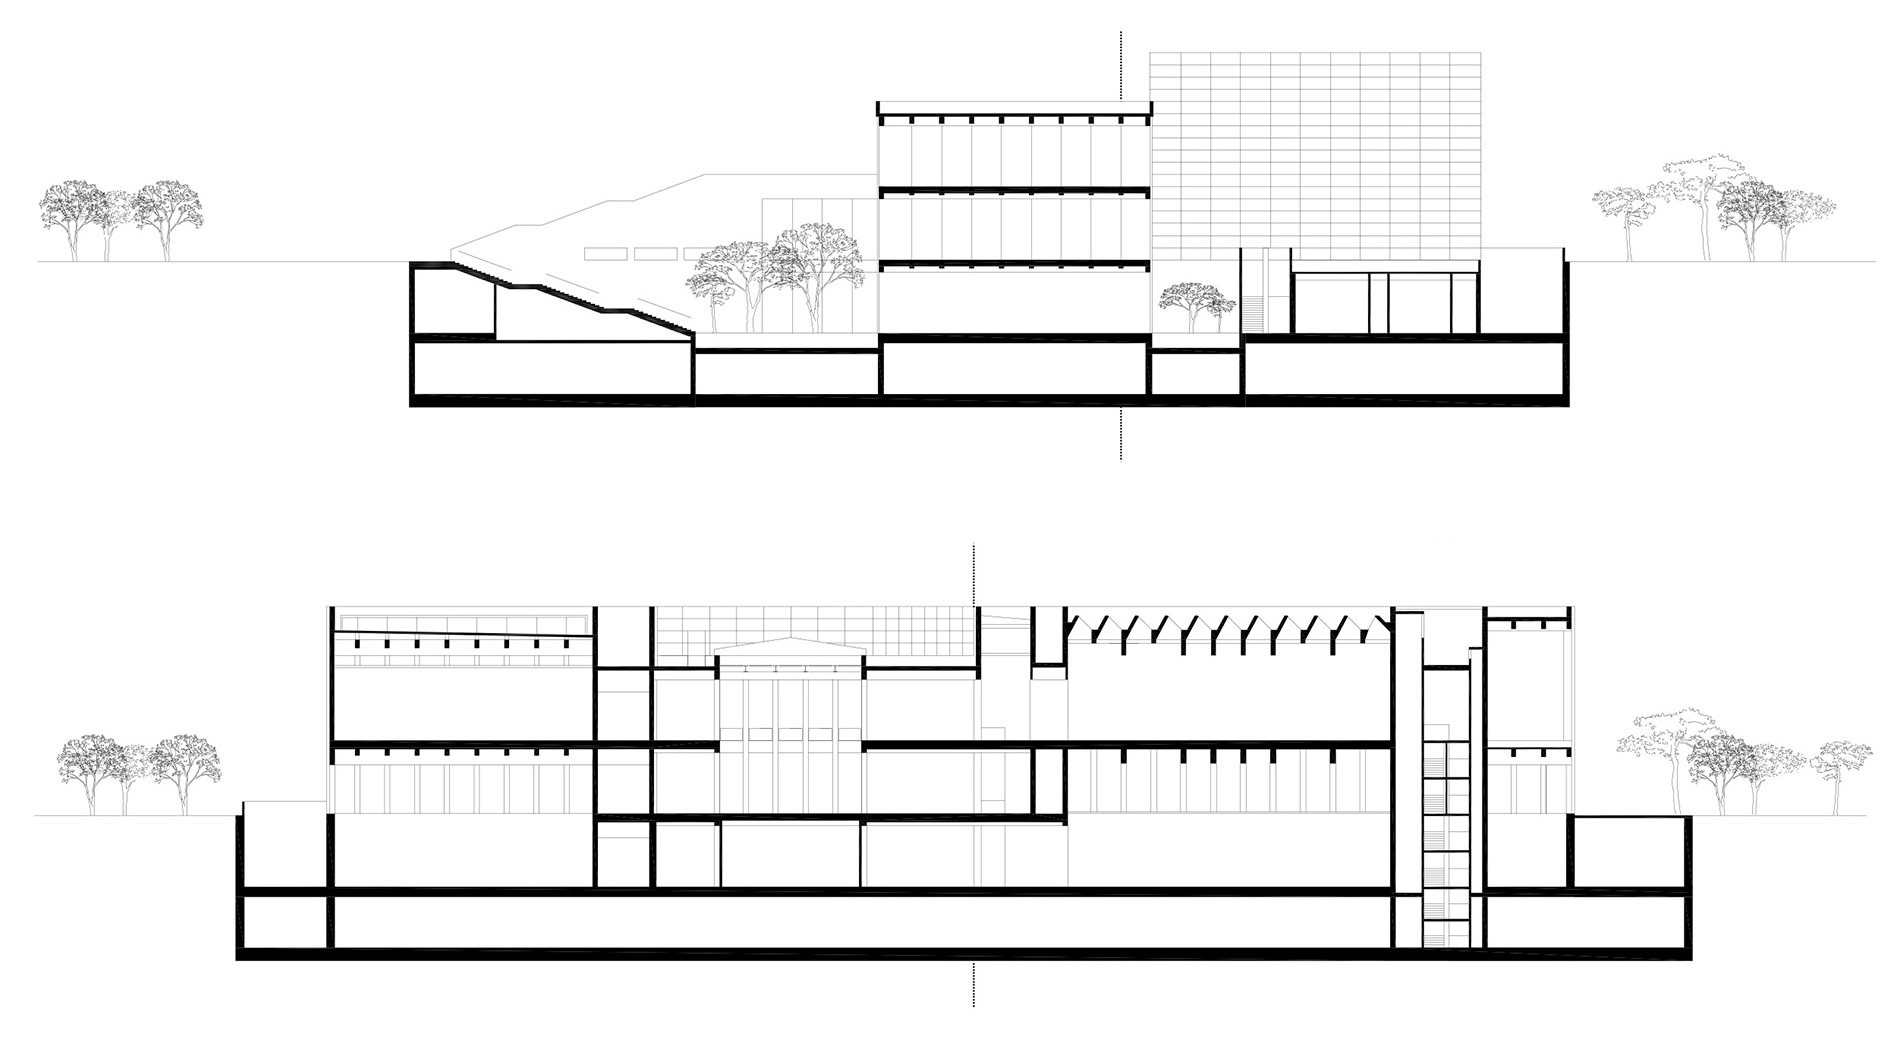 Sections| West Bund Museum | David Chipperfield Architects Berlin and Shanghai| STIRworld